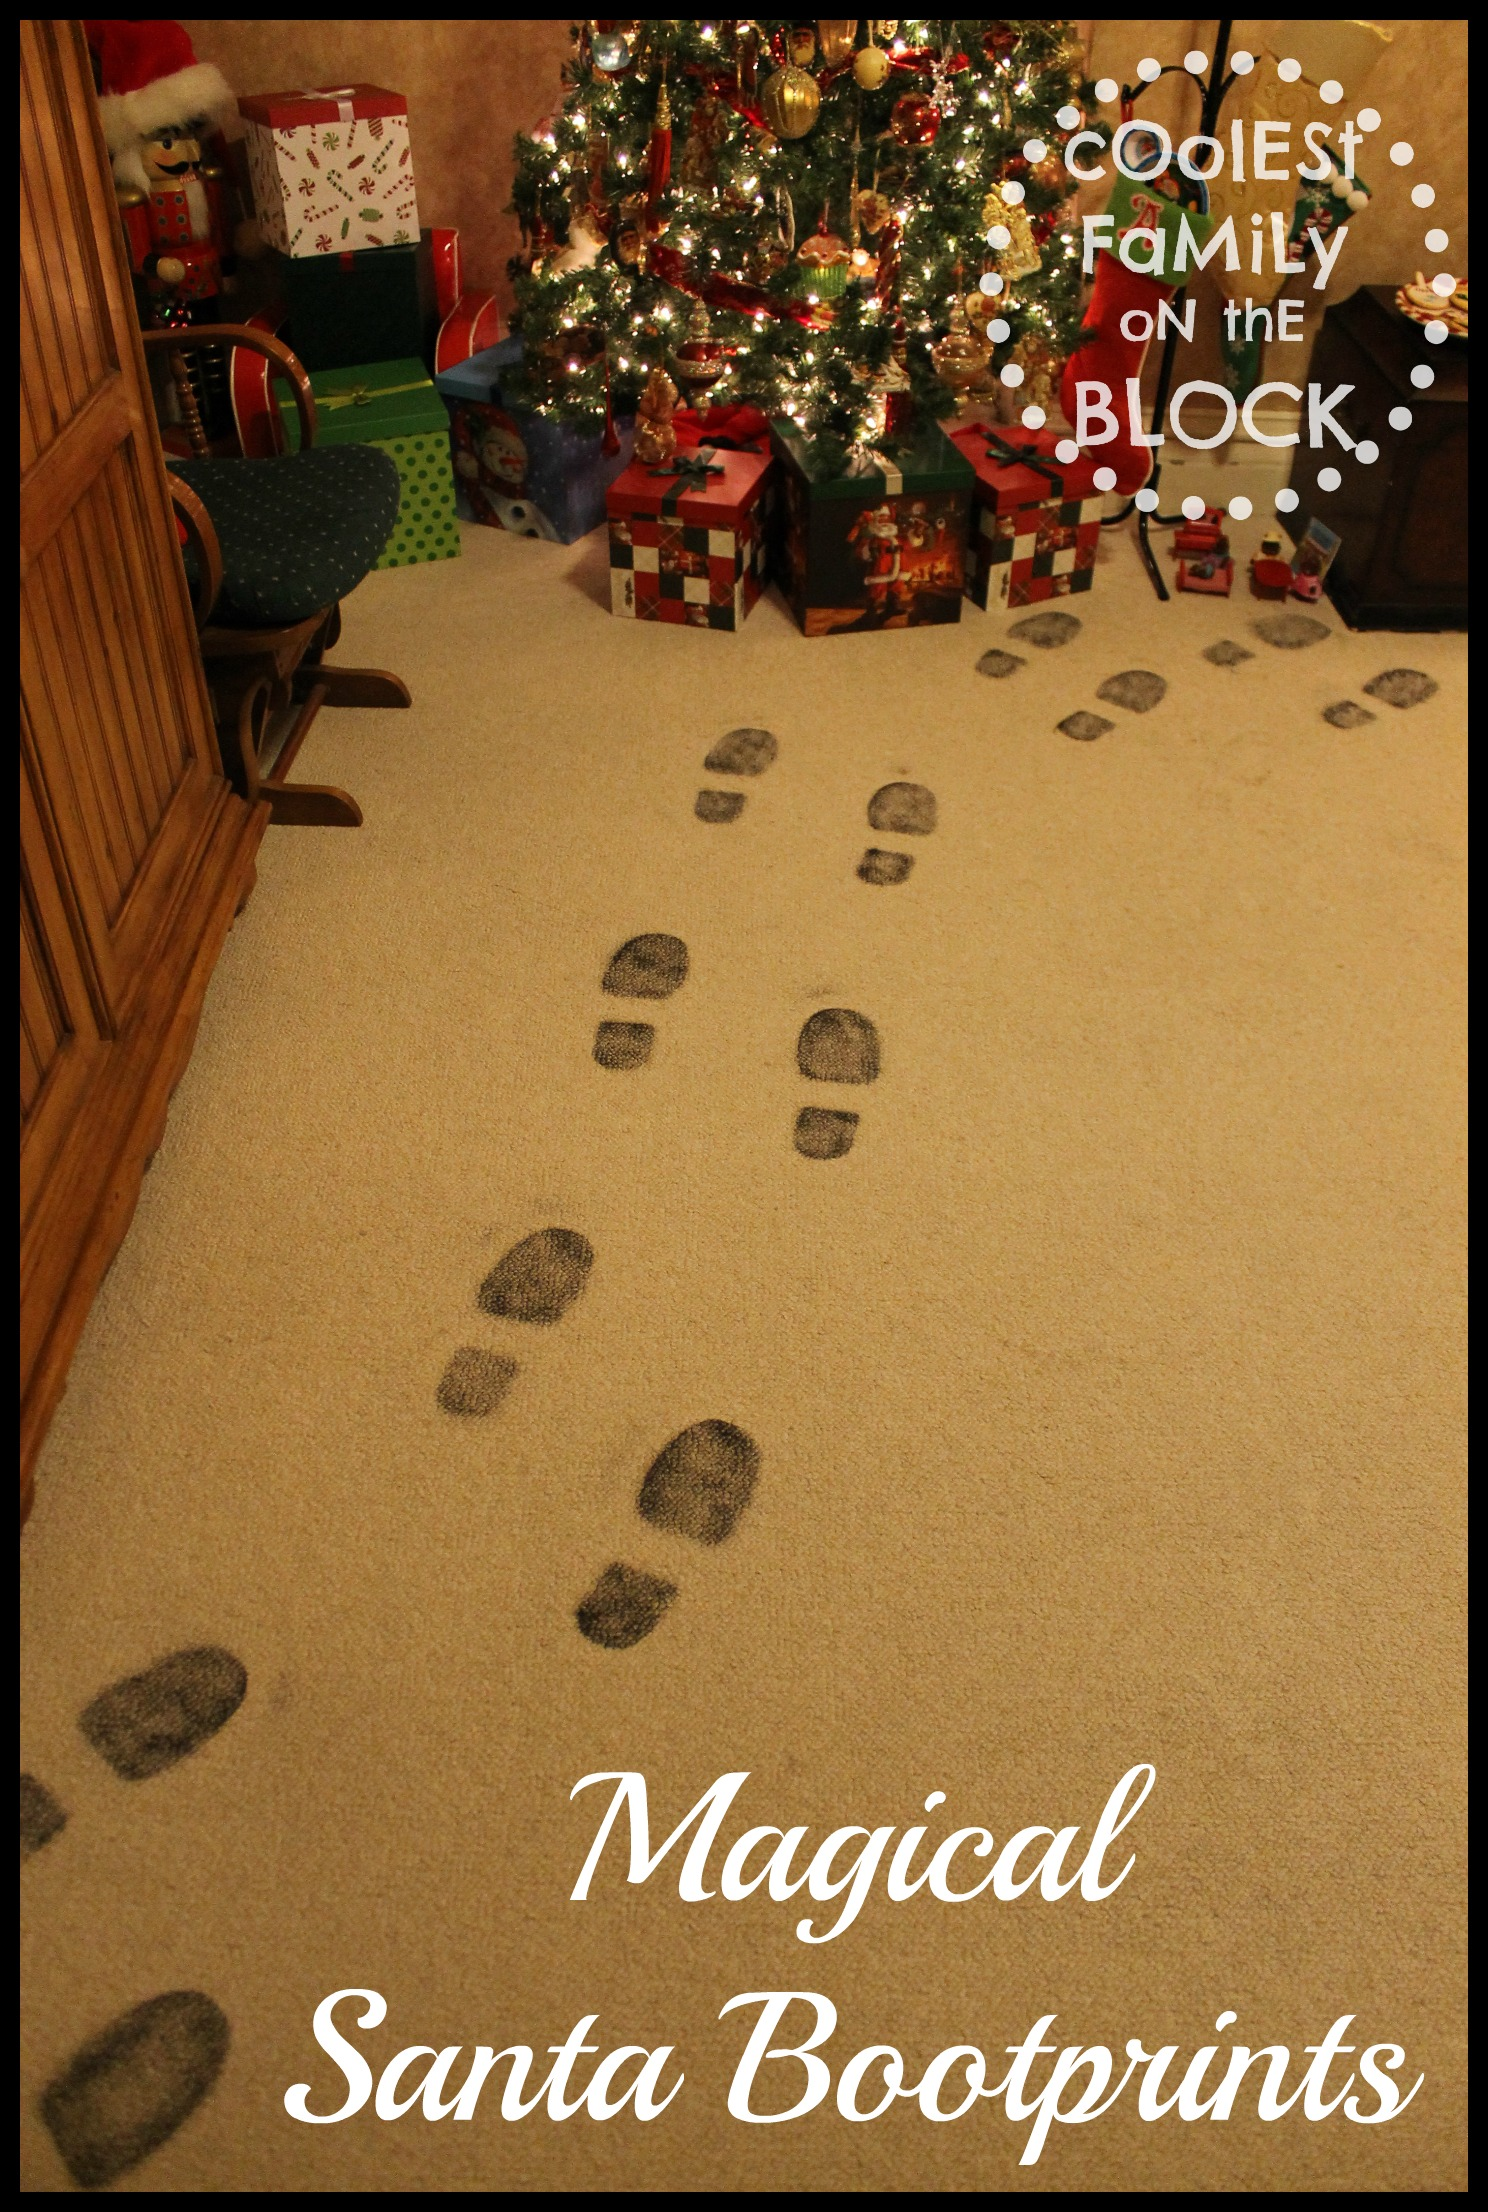 Santa Proof Magical Santa Bootprints